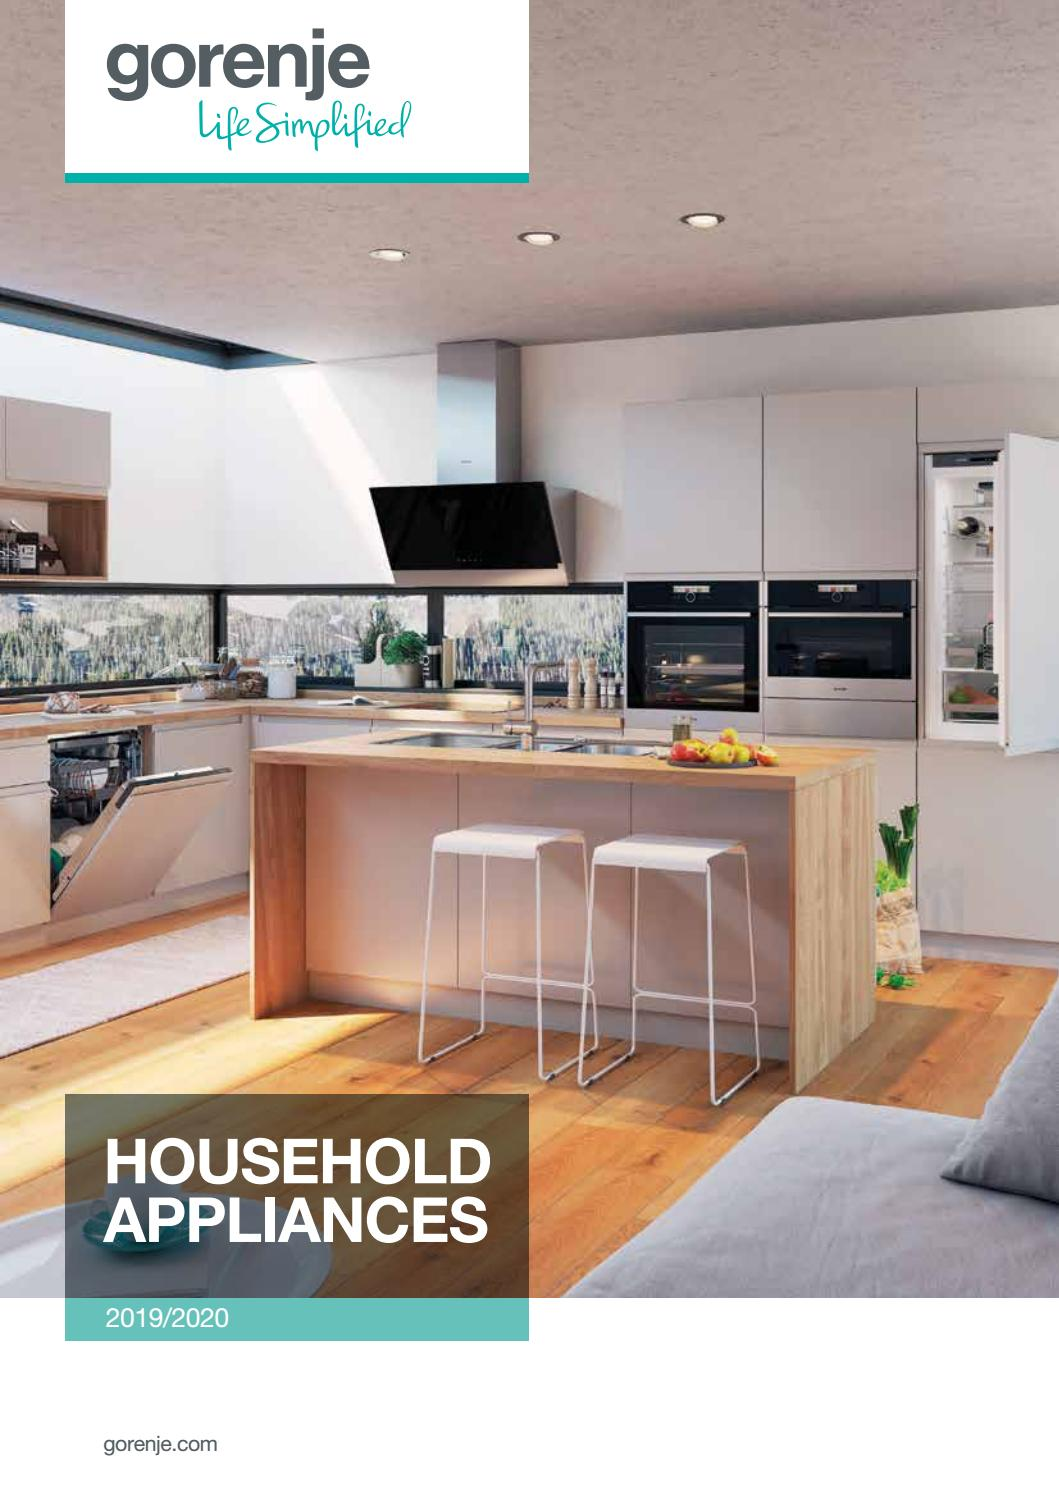 2020 Kitchen Design Manual Gorenje Household Appliances 2019 2020 By Gorenje D D Issuu